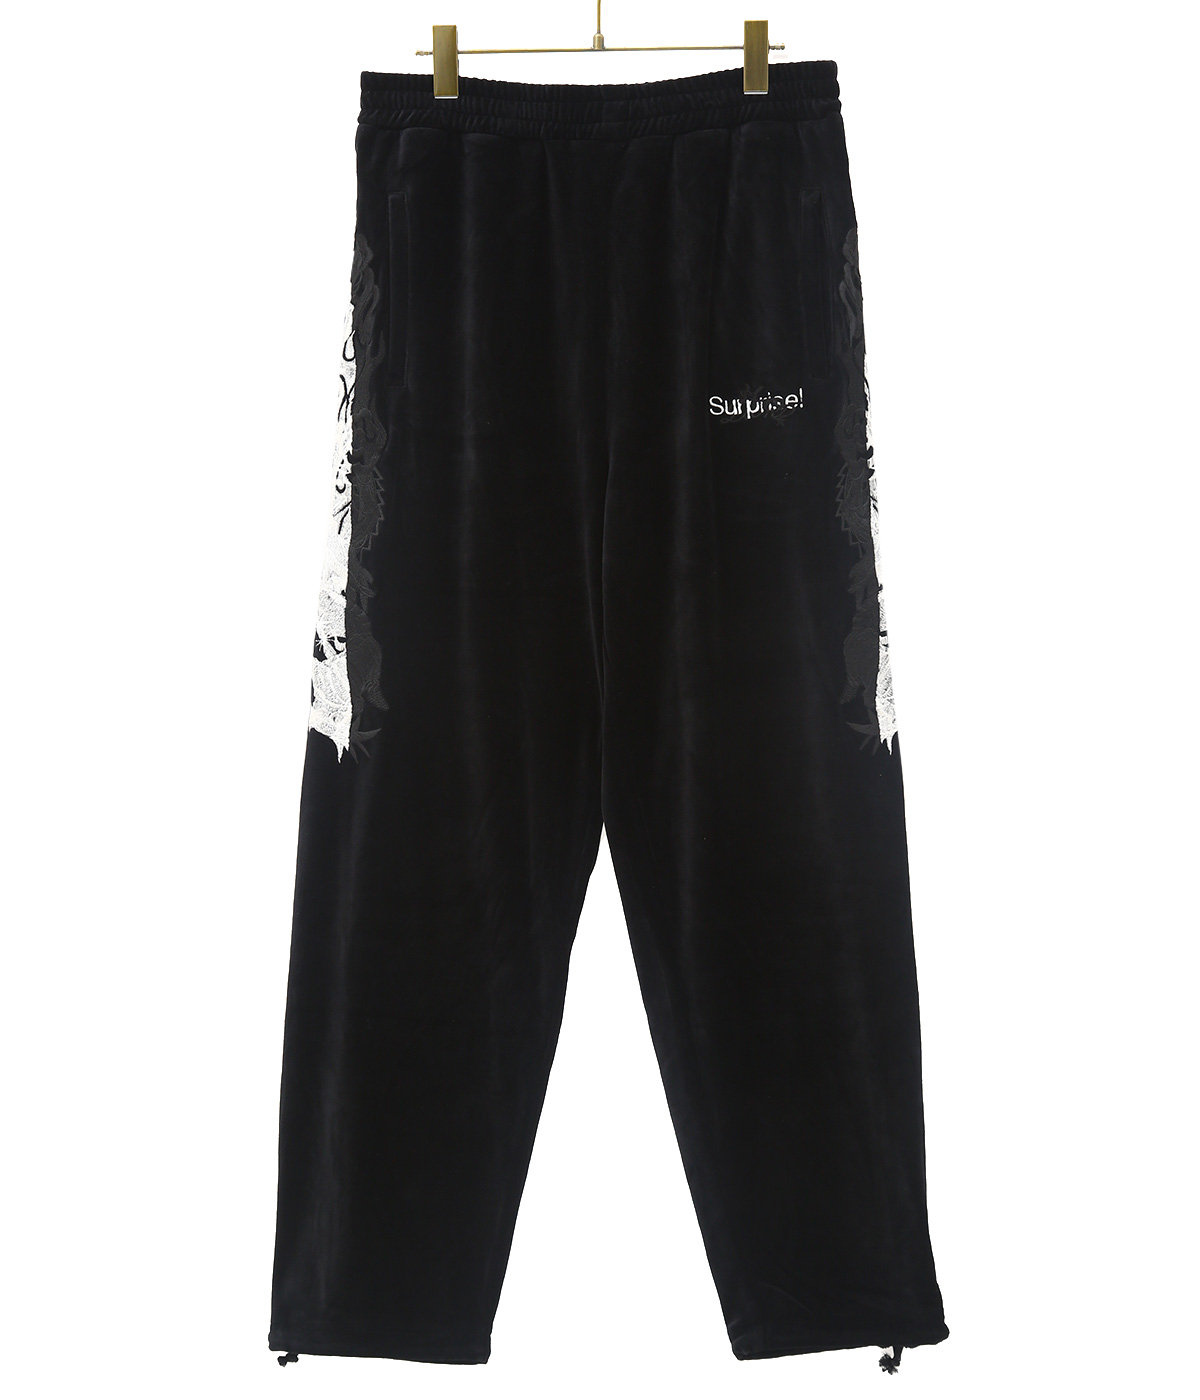 LINED CHAOS EMBROIDERY TRACK PANTS